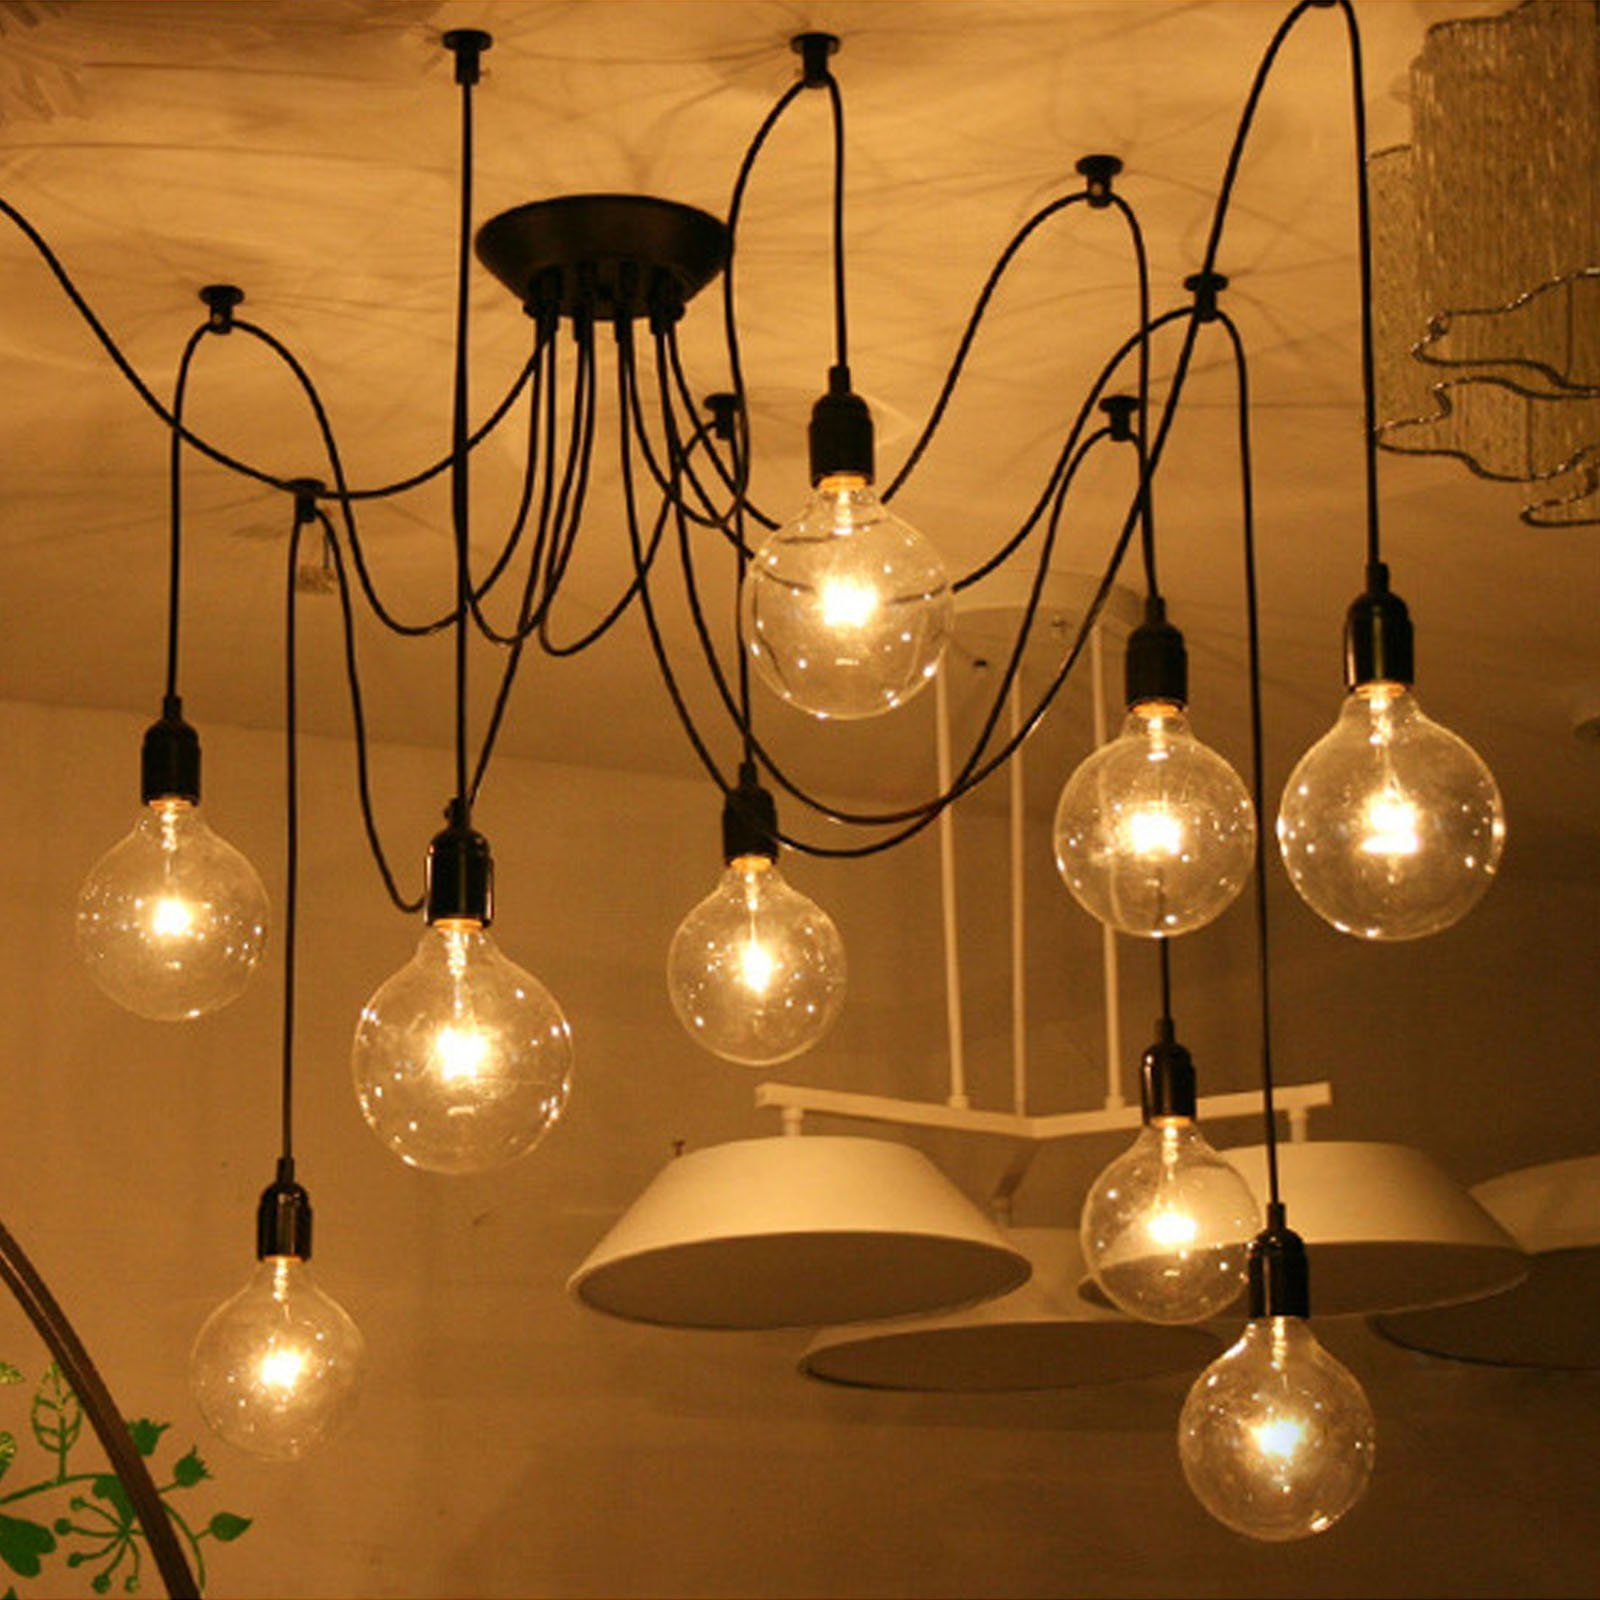 Vintage industrial fixture spider ceiling light lighting pendant vintage industrial fixture spider ceiling light lighting pendant chandelier lamp mozeypictures Choice Image